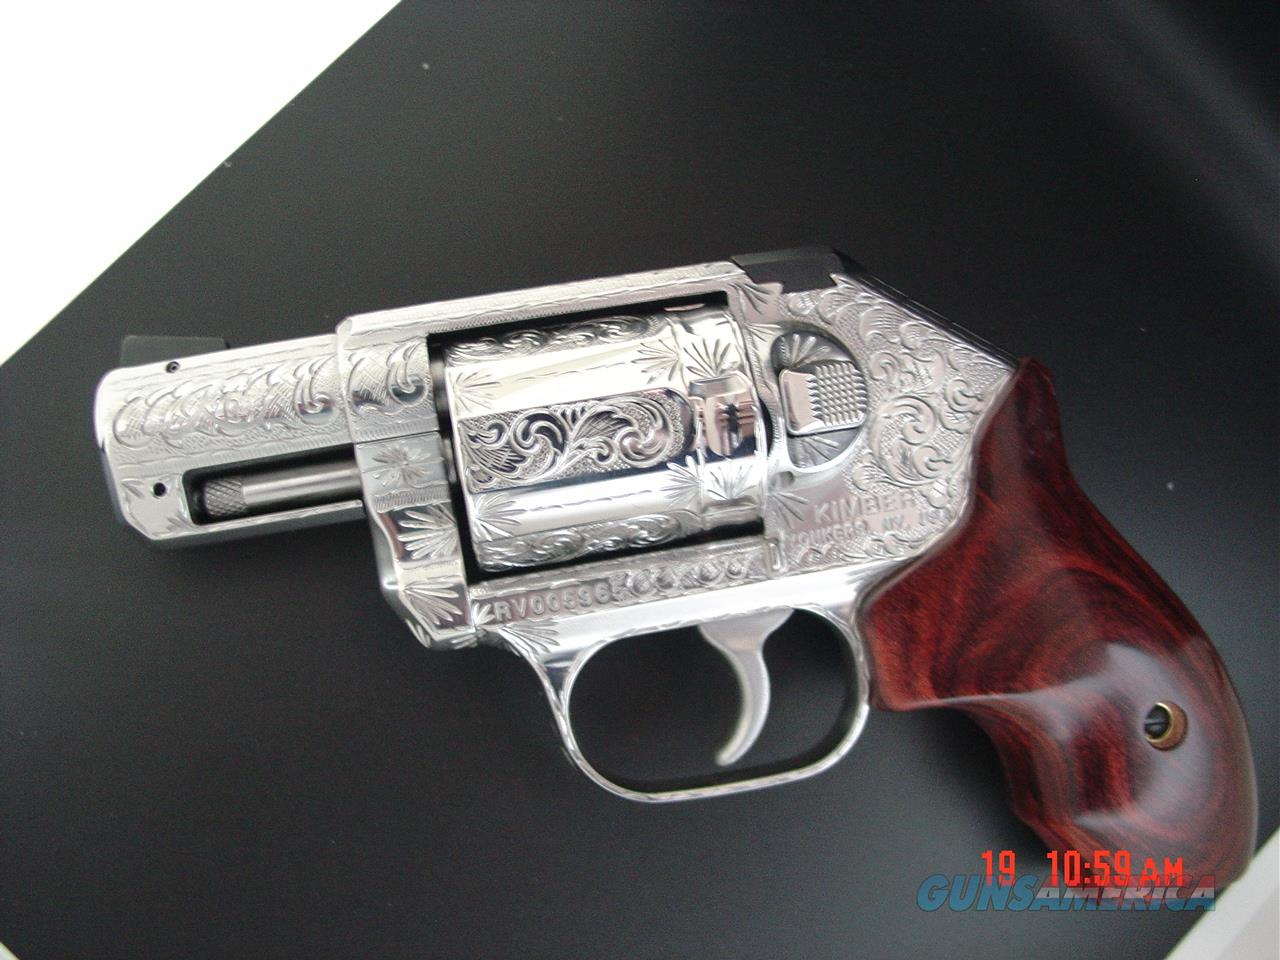 Kimber K6S 357 magnum,fully engraved & polished by Flannery Engraving,6 shots,Rosewood grips,never fired,in box with manual etc.awesome work of art !!  Guns > Pistols > Kimber of America Pistols > Revolvers